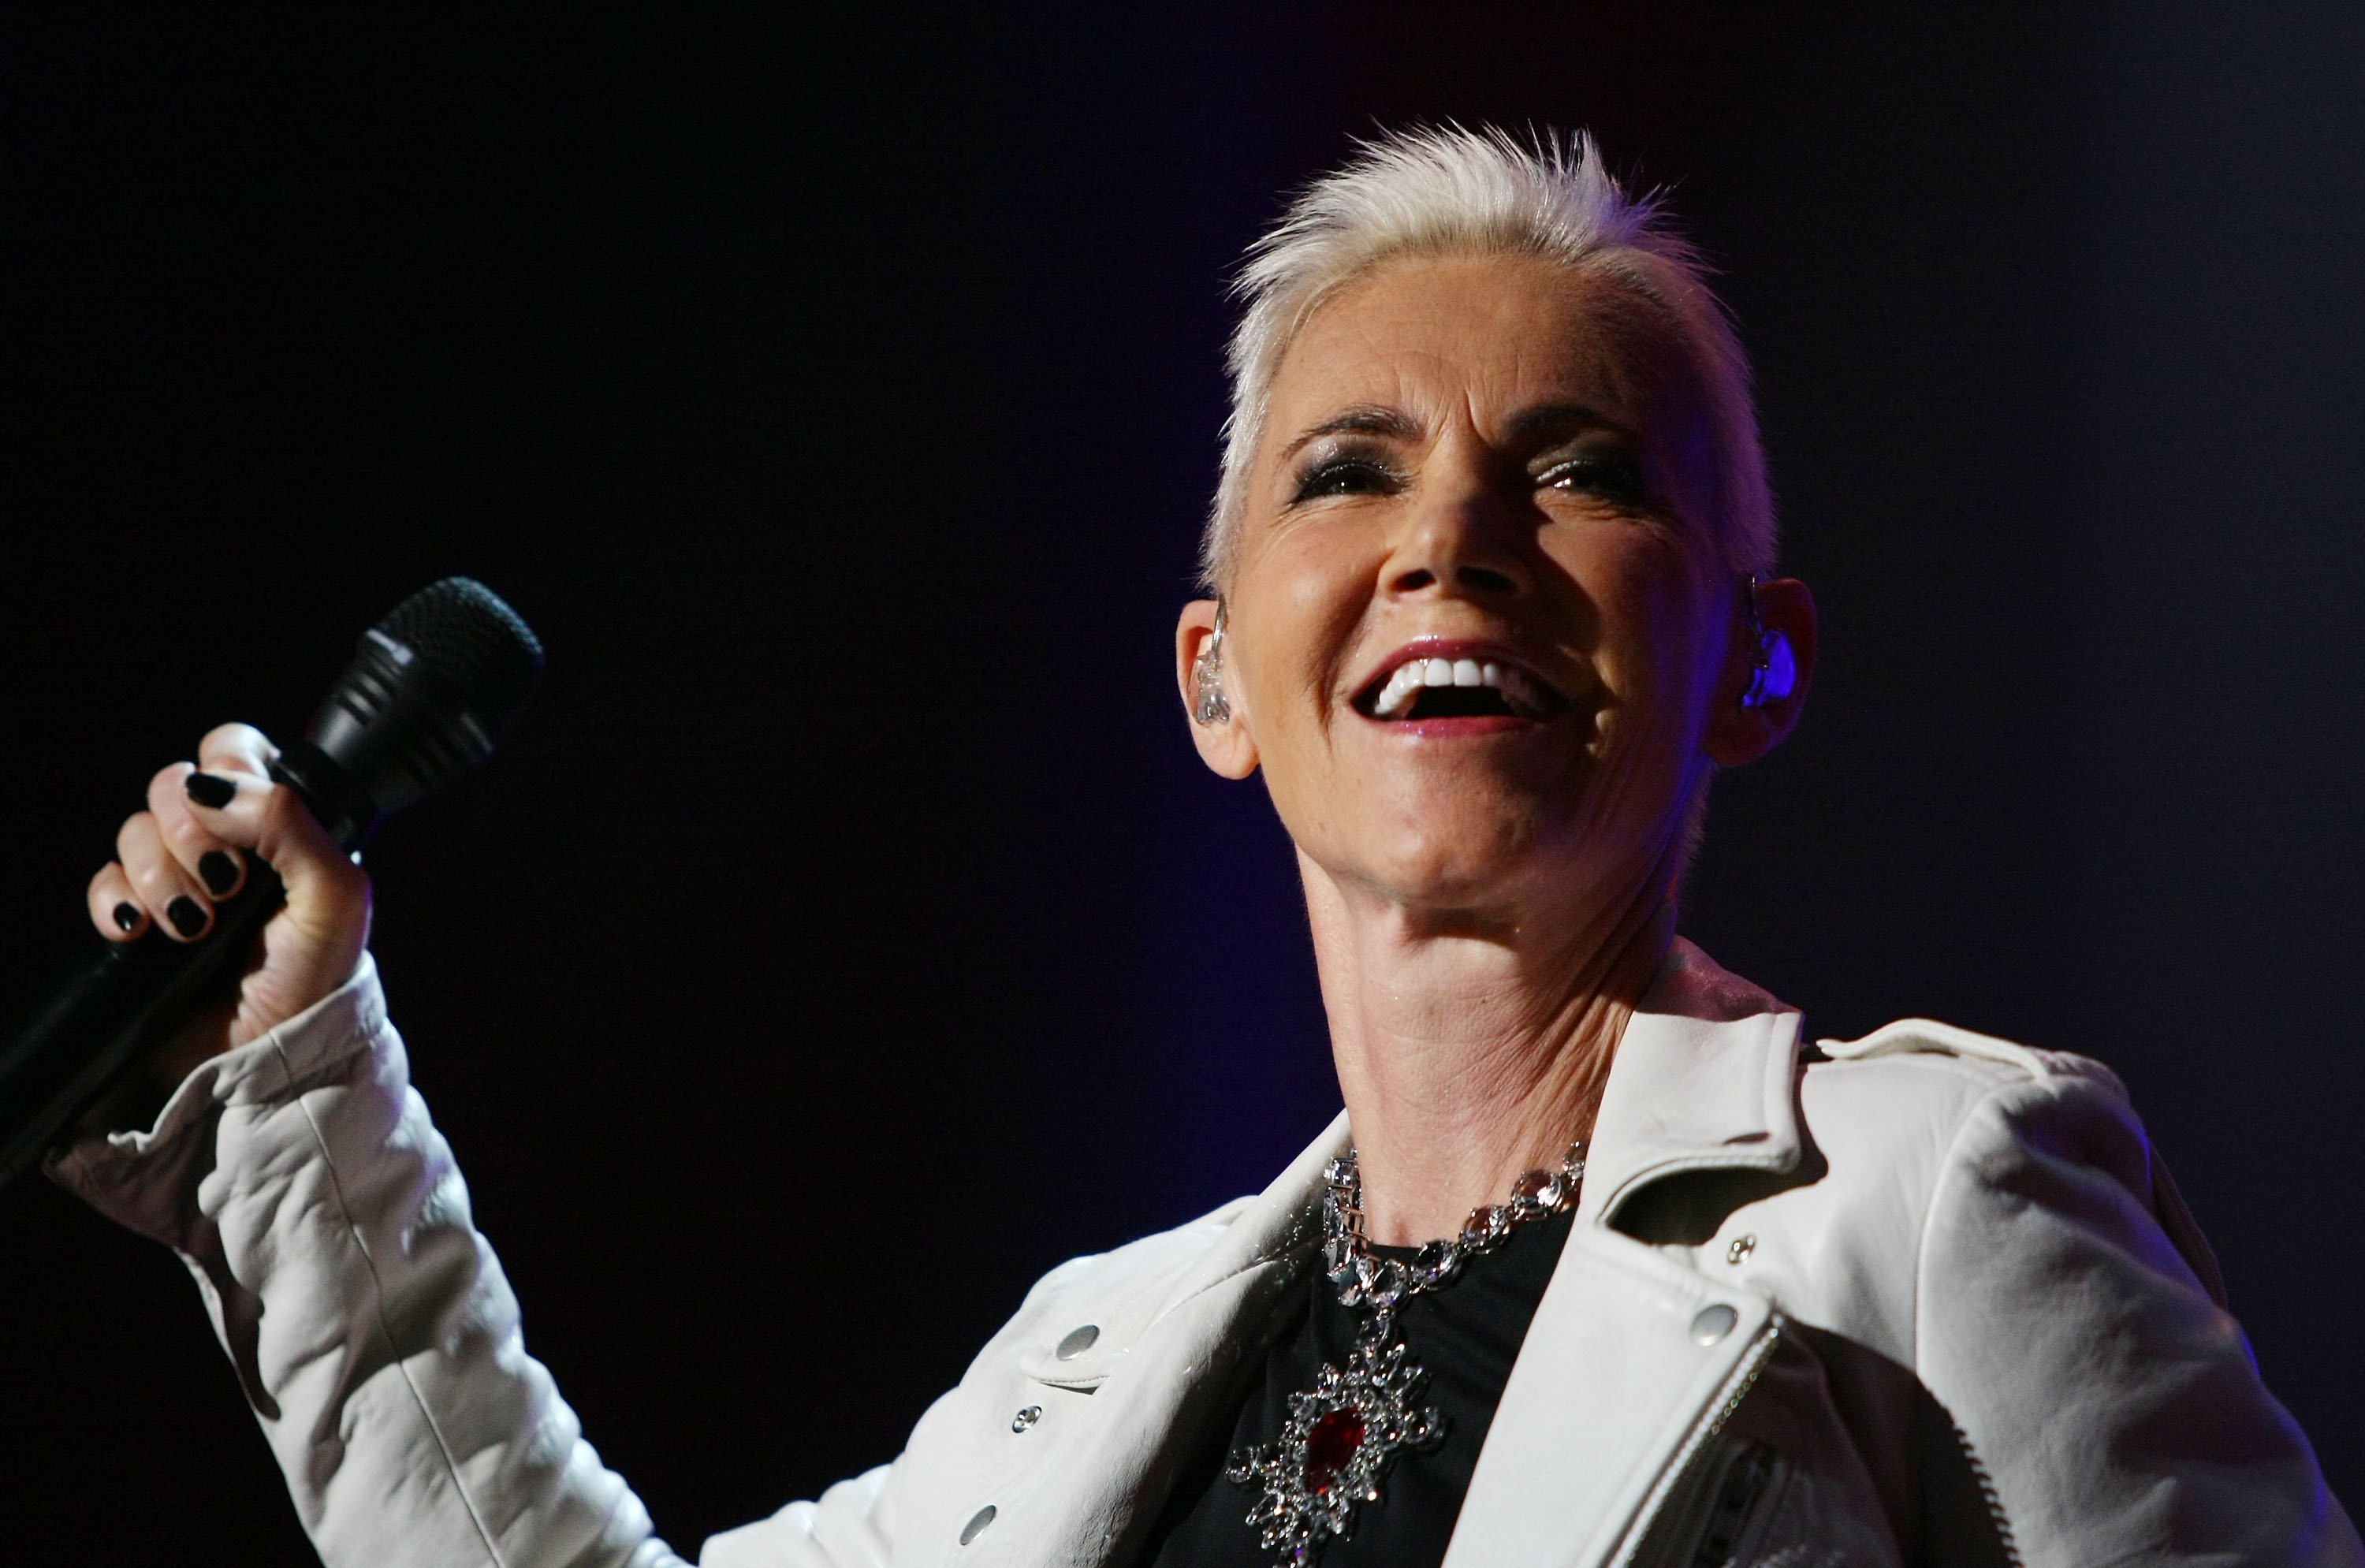 Marie Fredriksson of the Swedish band Roxette performs live during a concert at the Zitadelle Spandau on June 11, 2011 | Photo: GettyImages